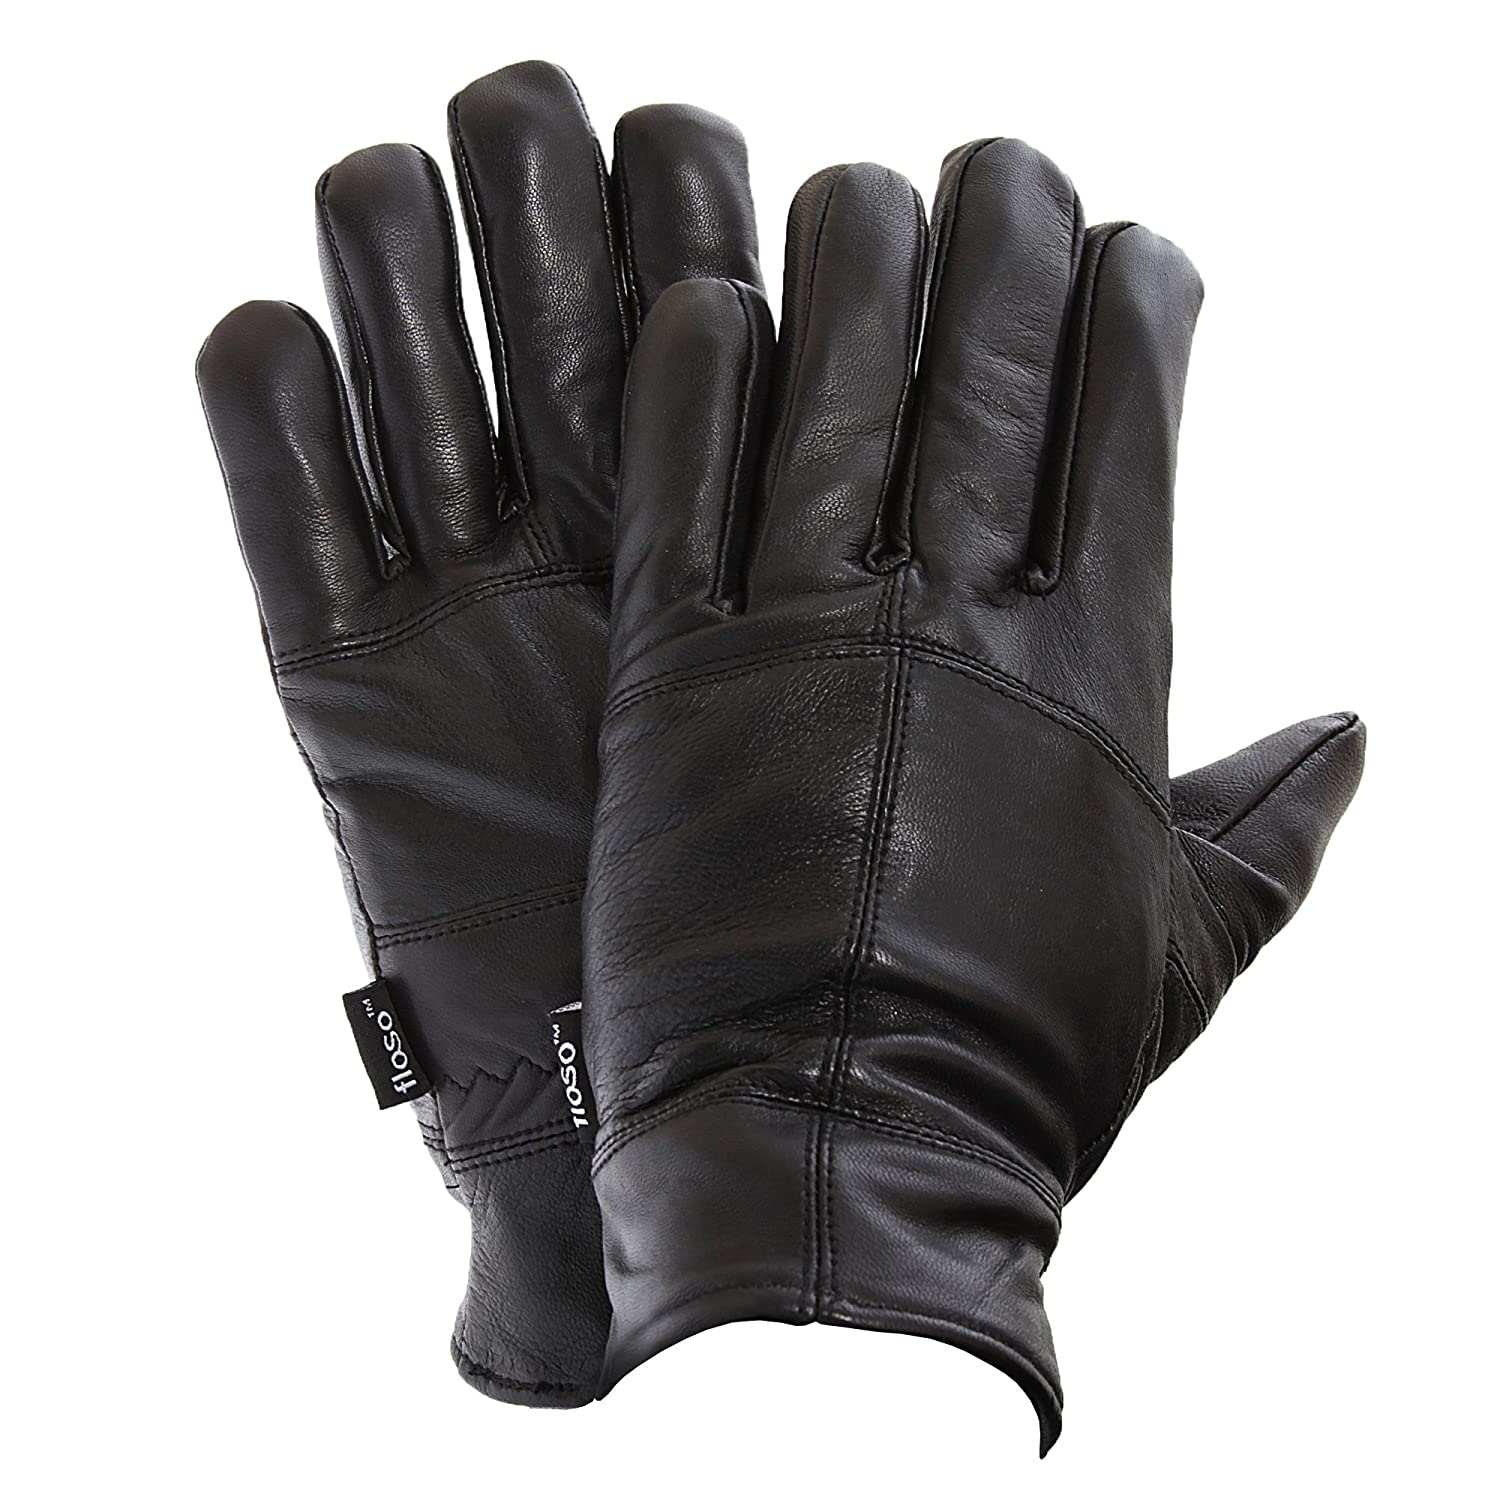 Mens leather gloves thinsulate - Floso Mens Thinsulate Lined Genuine Leather Gloves 3m 40g M L Black At Amazon Men S Clothing Store Cold Weather Gloves